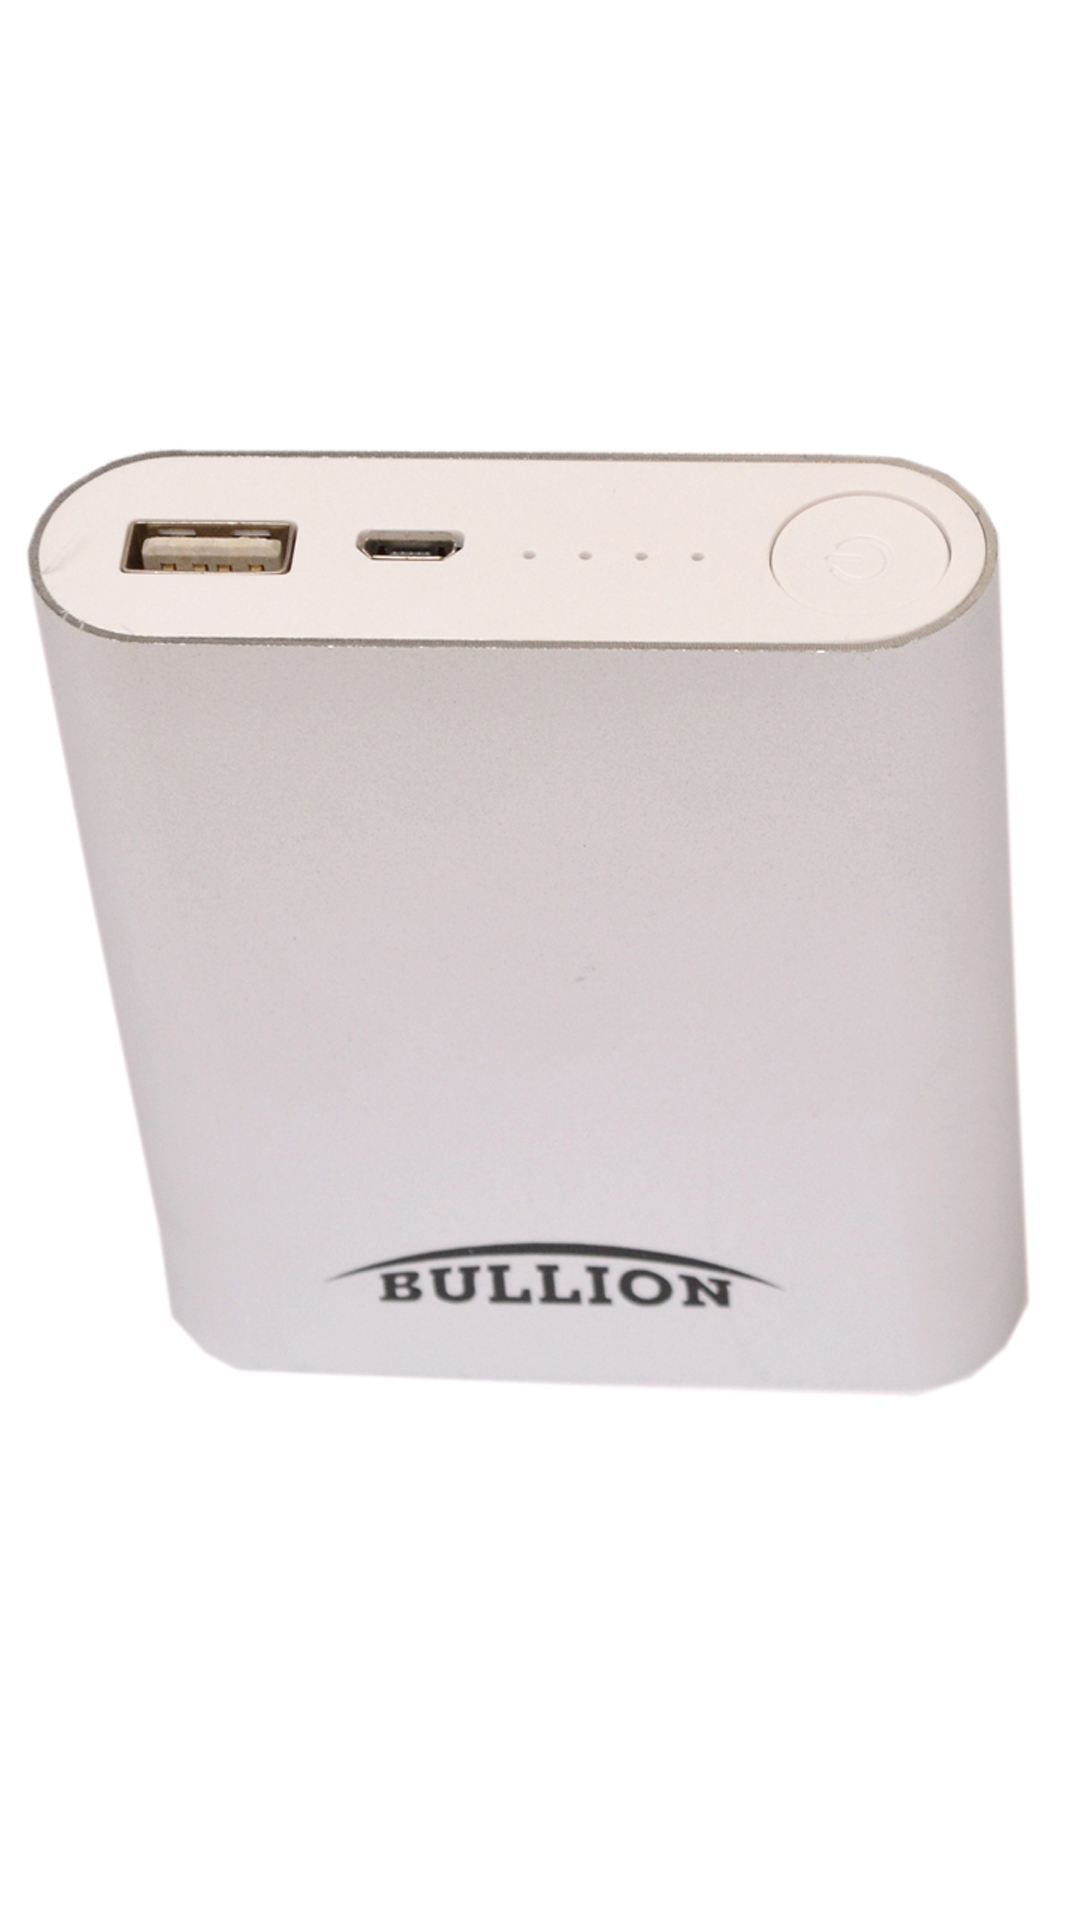 Bullion PB7 10400 mAh Power Bank